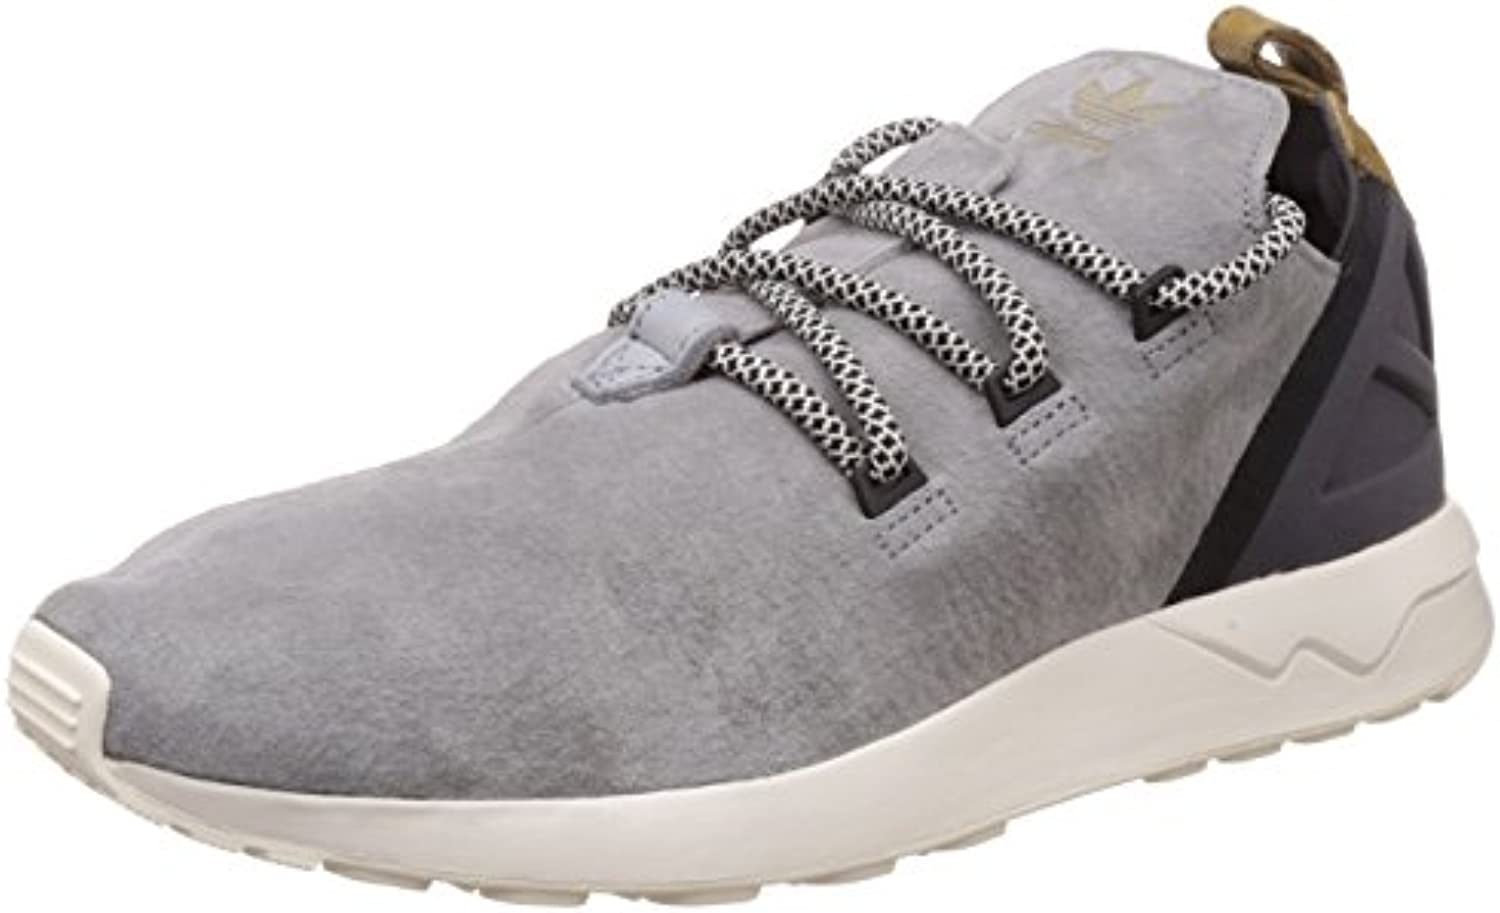 Adidas ZX Flux ADV X  light onix/craft khaki/chalk white  12